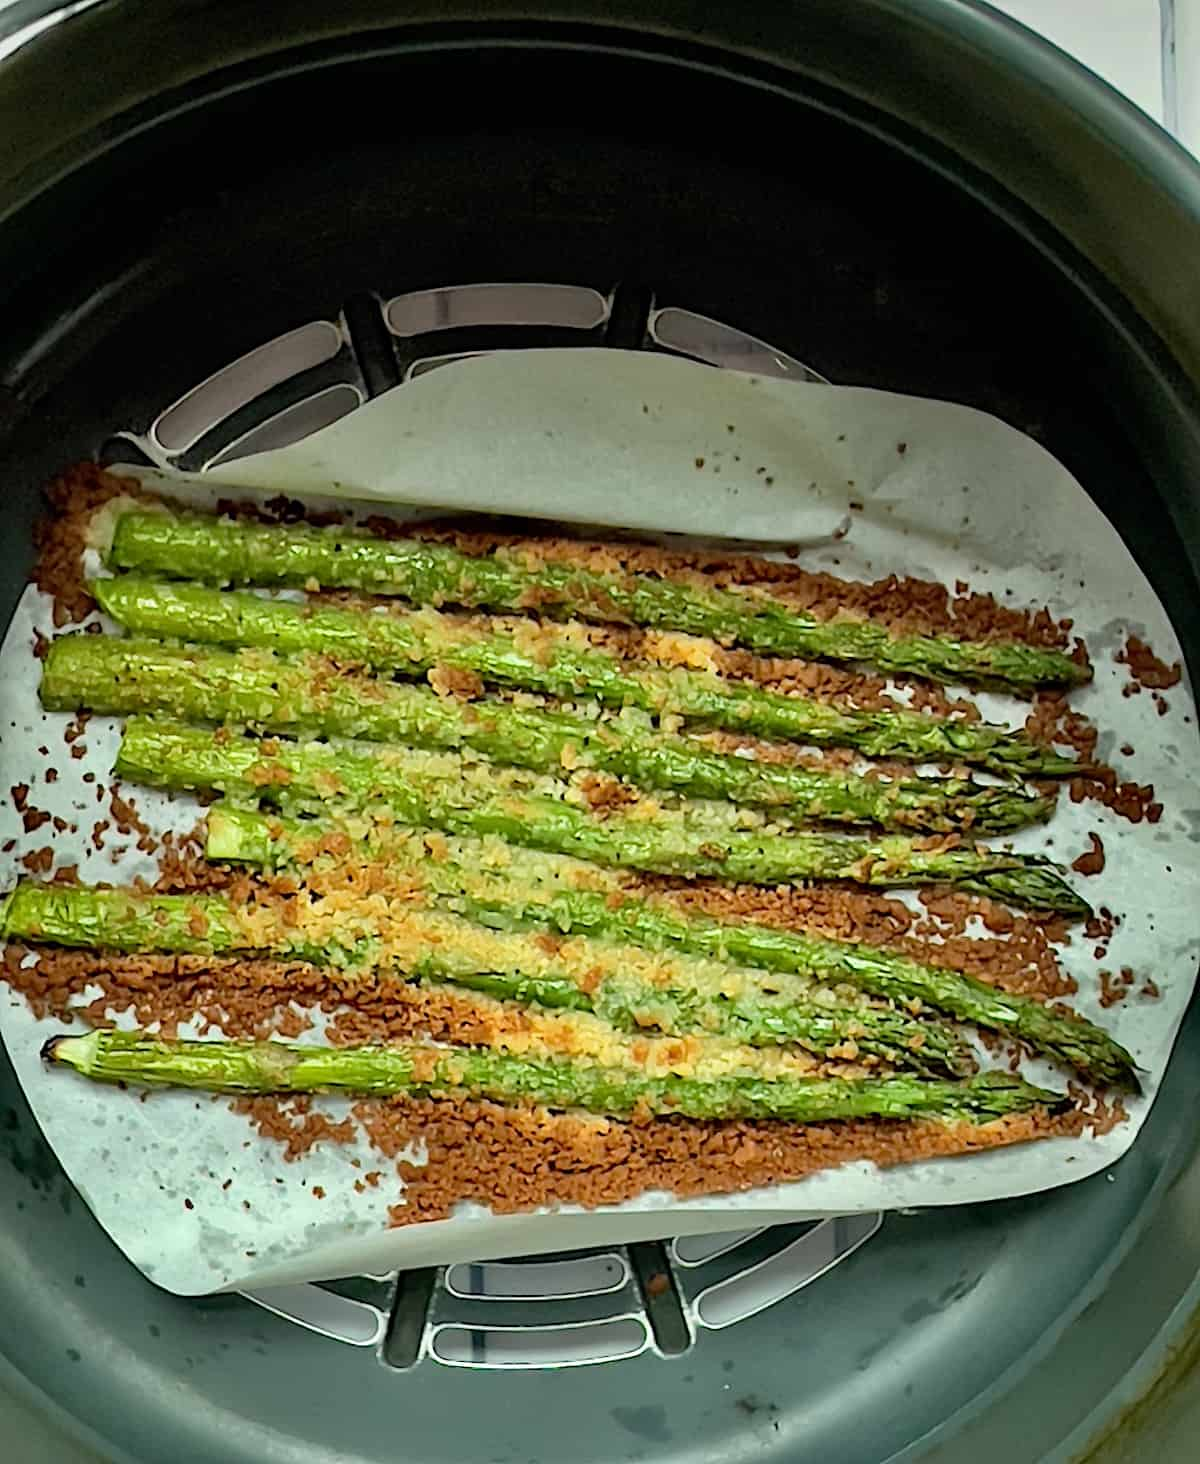 cooked asparagus with parmesan in an air fryer basket